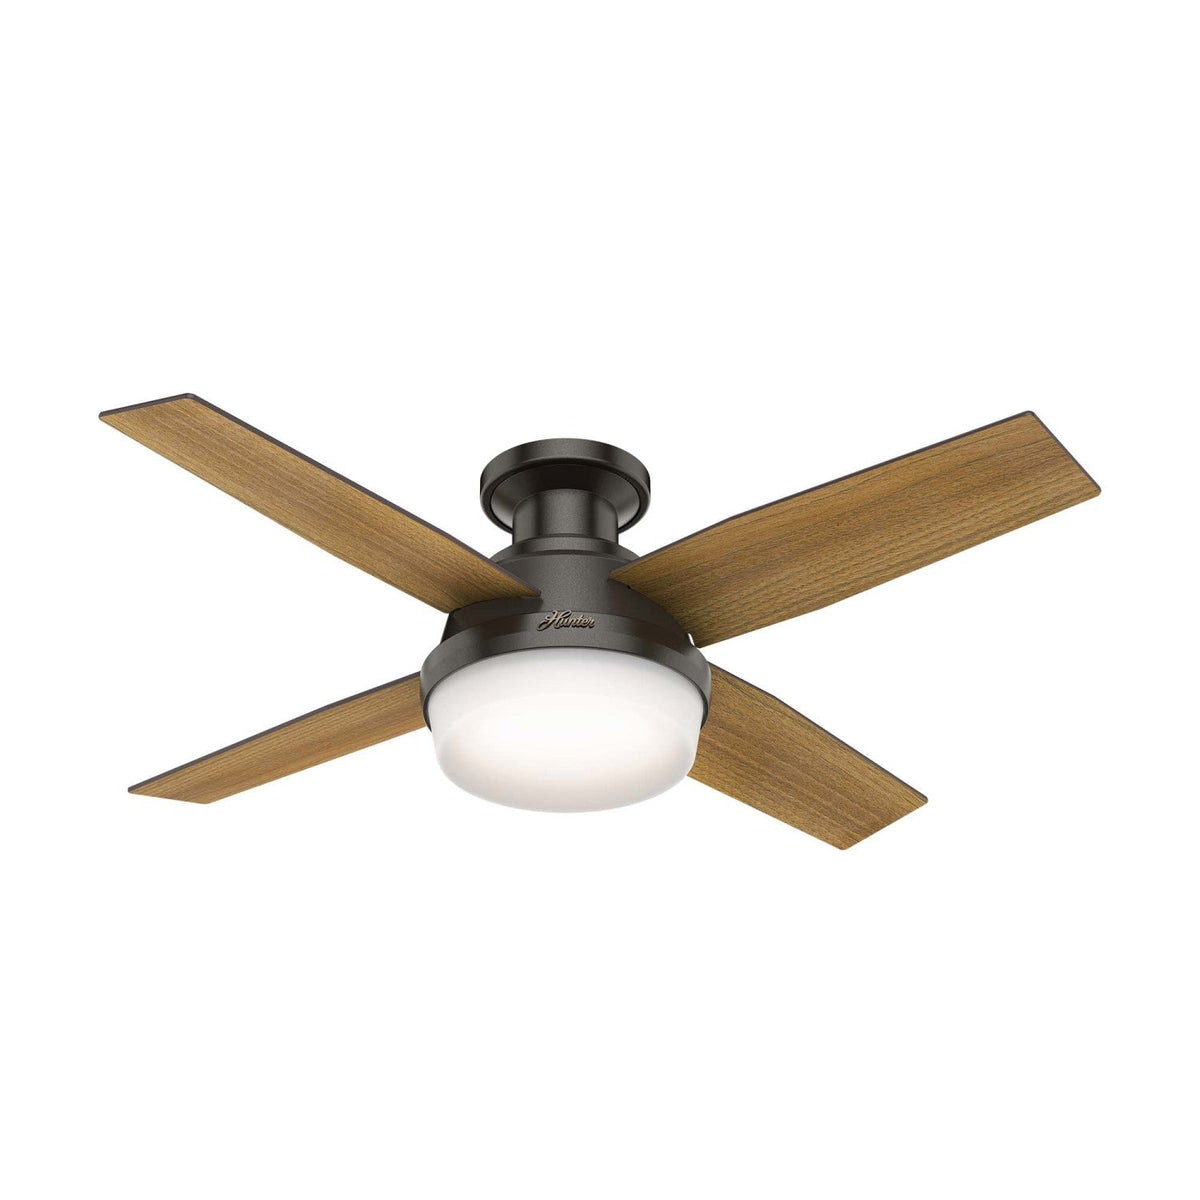 Dempsey Low Profile With Light 44 Inch Ceiling Fan